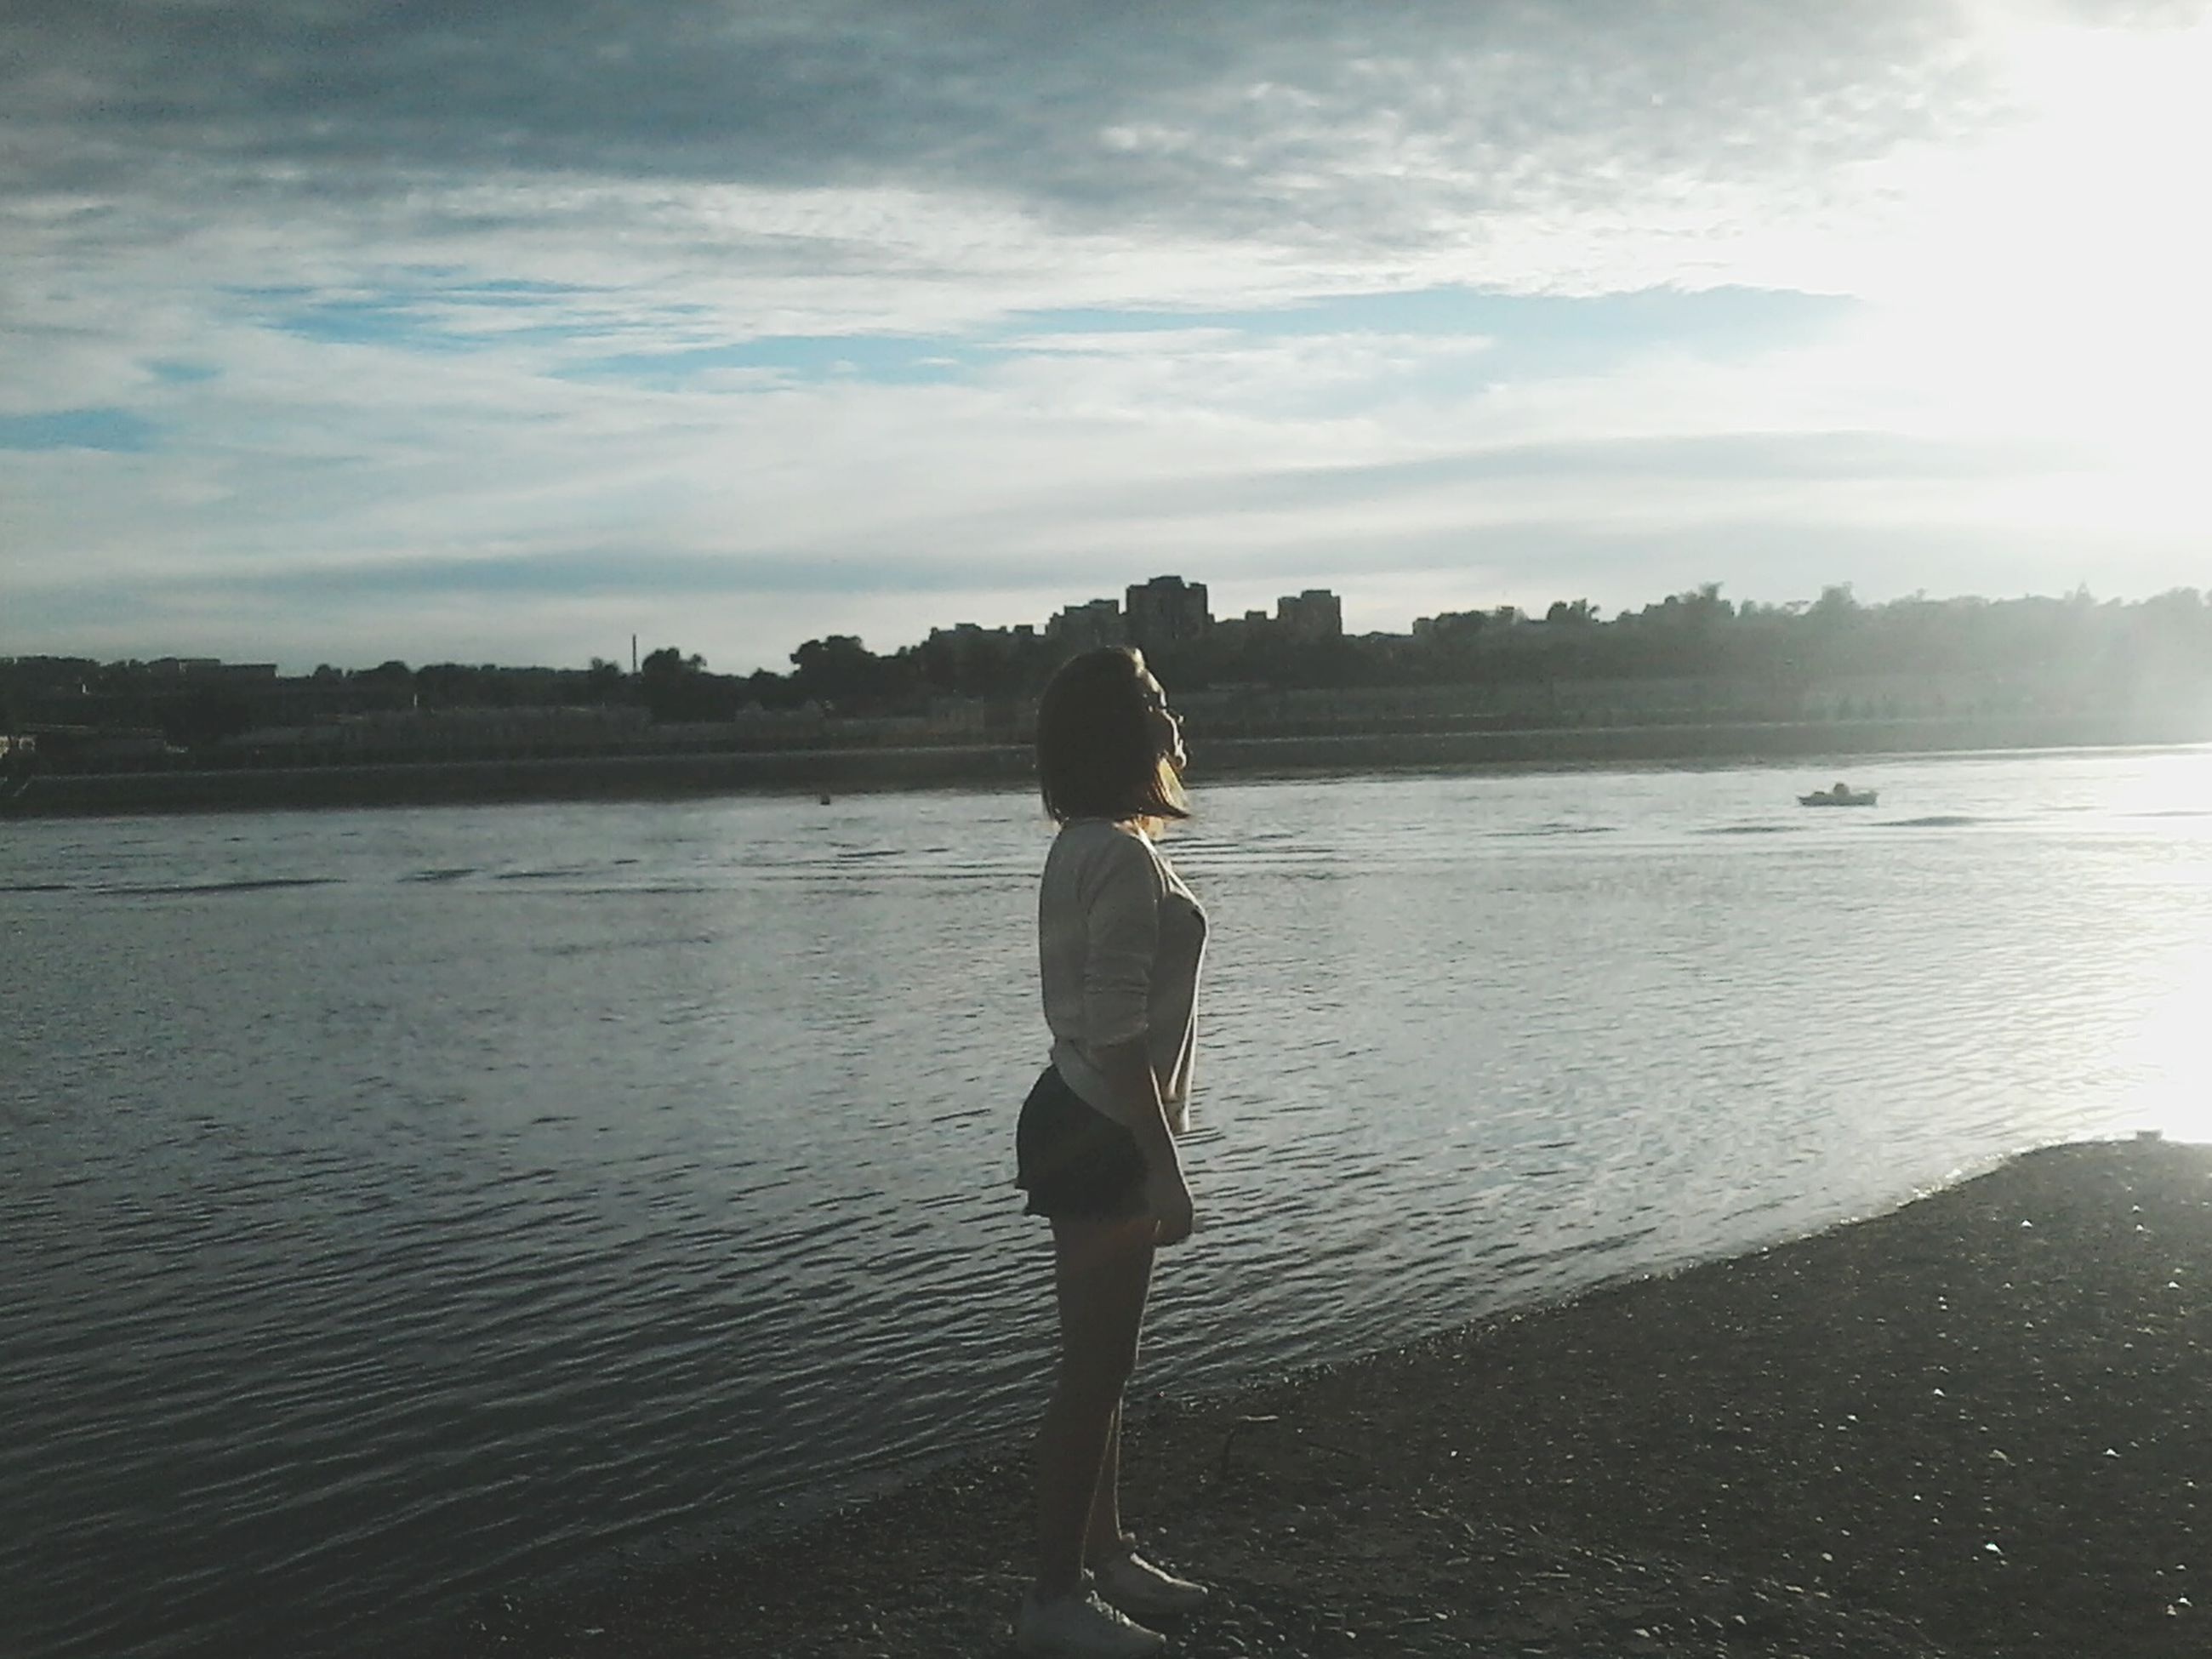 water, sky, full length, rear view, lifestyles, standing, leisure activity, casual clothing, sea, tranquility, cloud - sky, nature, walking, tranquil scene, person, lake, beauty in nature, river